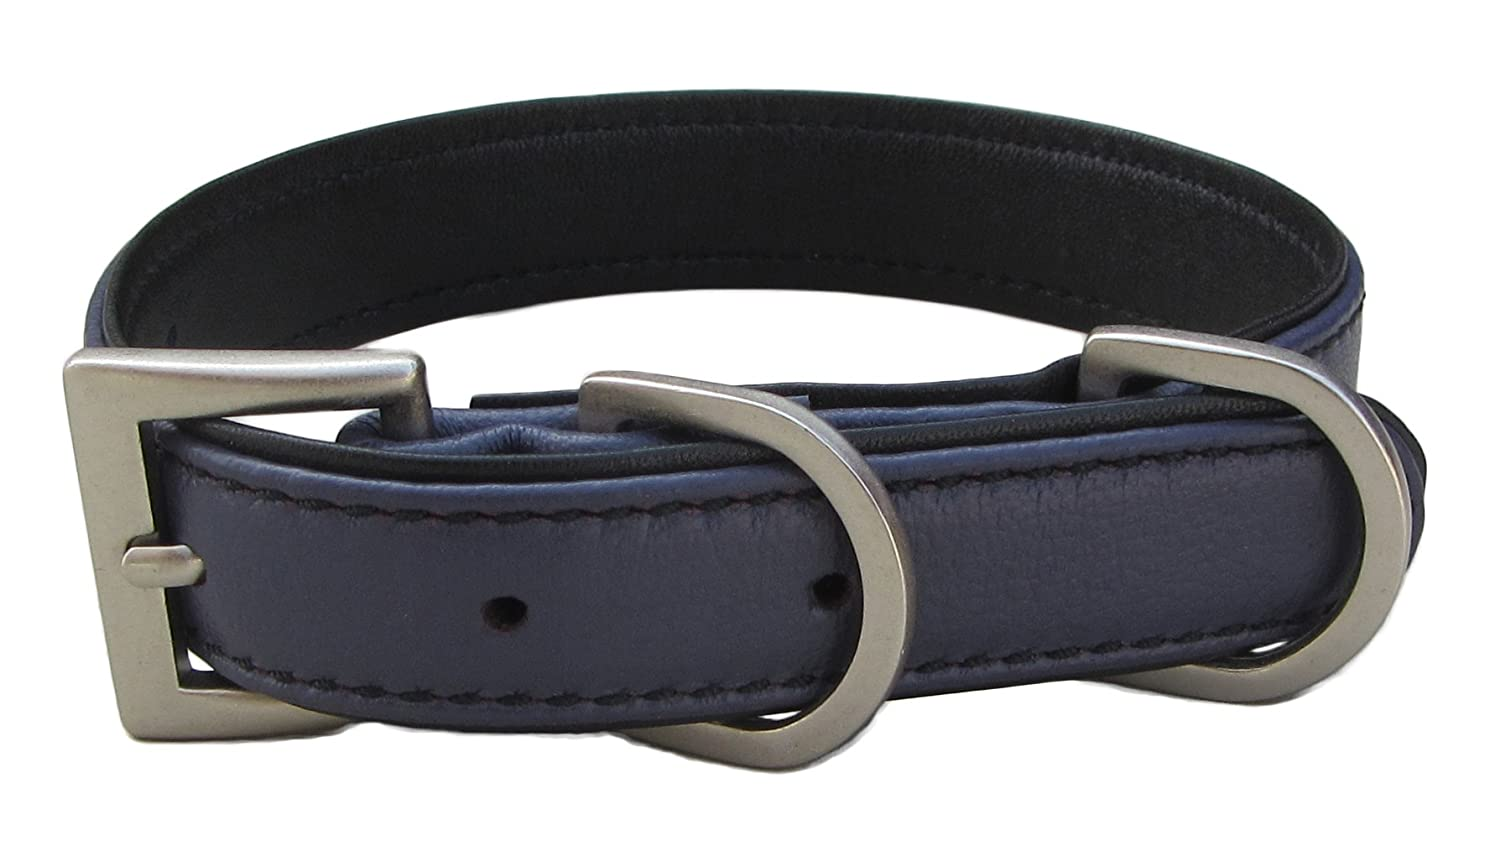 Dark Purple with Black Padding Large neck size 14-18 inches Dark Purple with Black Padding Large neck size 14-18 inches BeauCou Luxury Real Leather Padded Dog Puppy Collar, Dark Purple; Large ; Fits Neck Size 14-18 inches